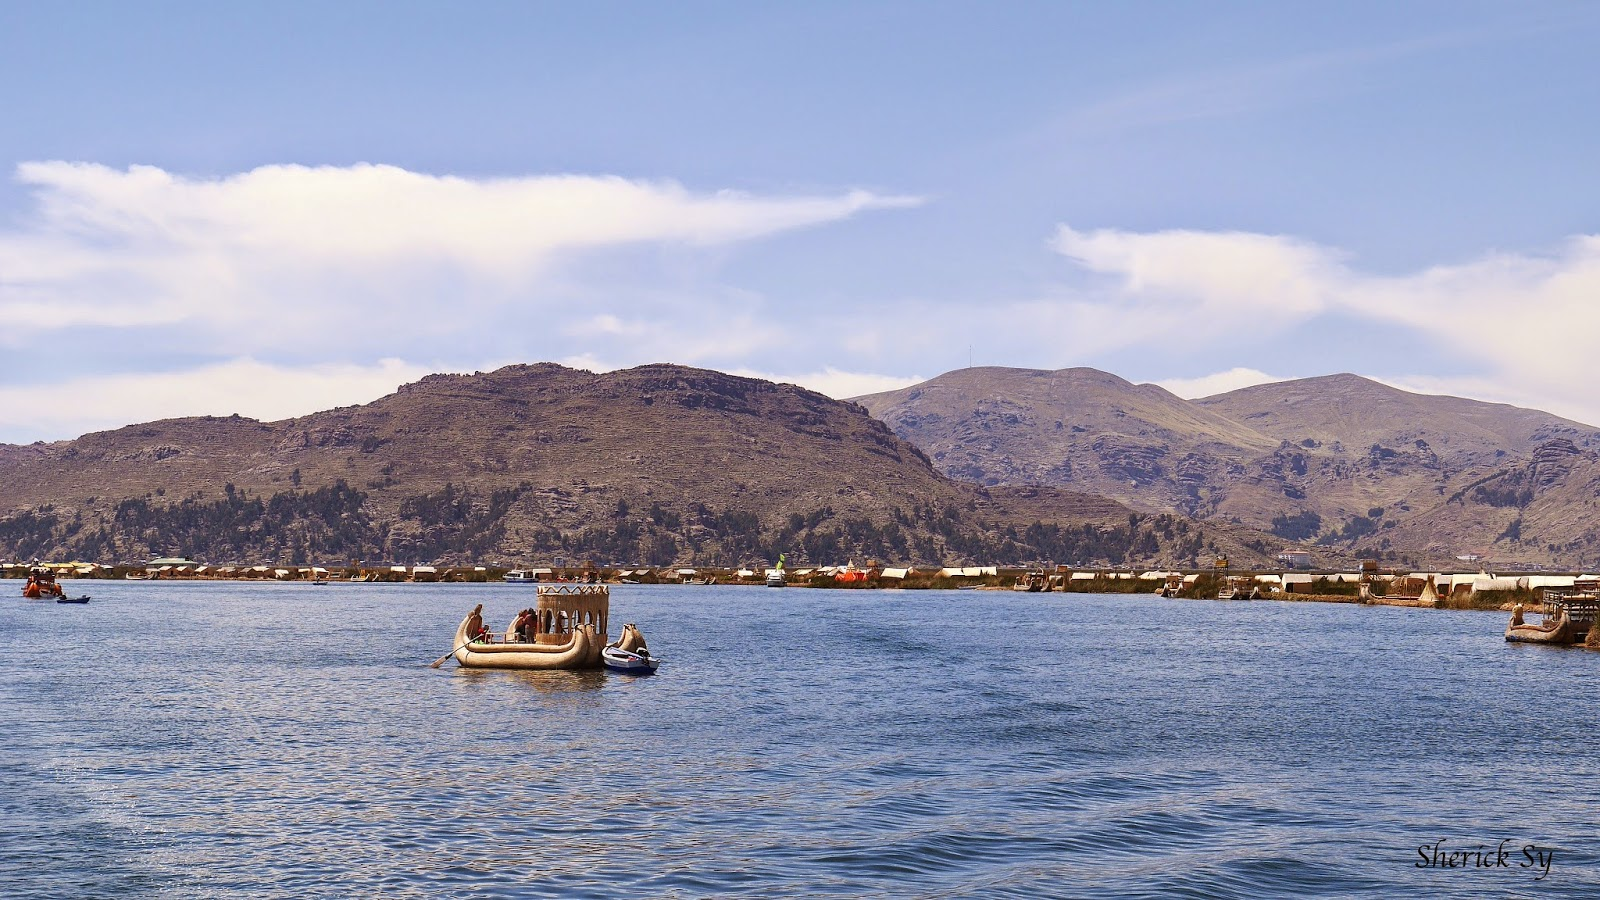 Totora Boat and the Floating Islands of Uros, Lake Titicaca, Peru